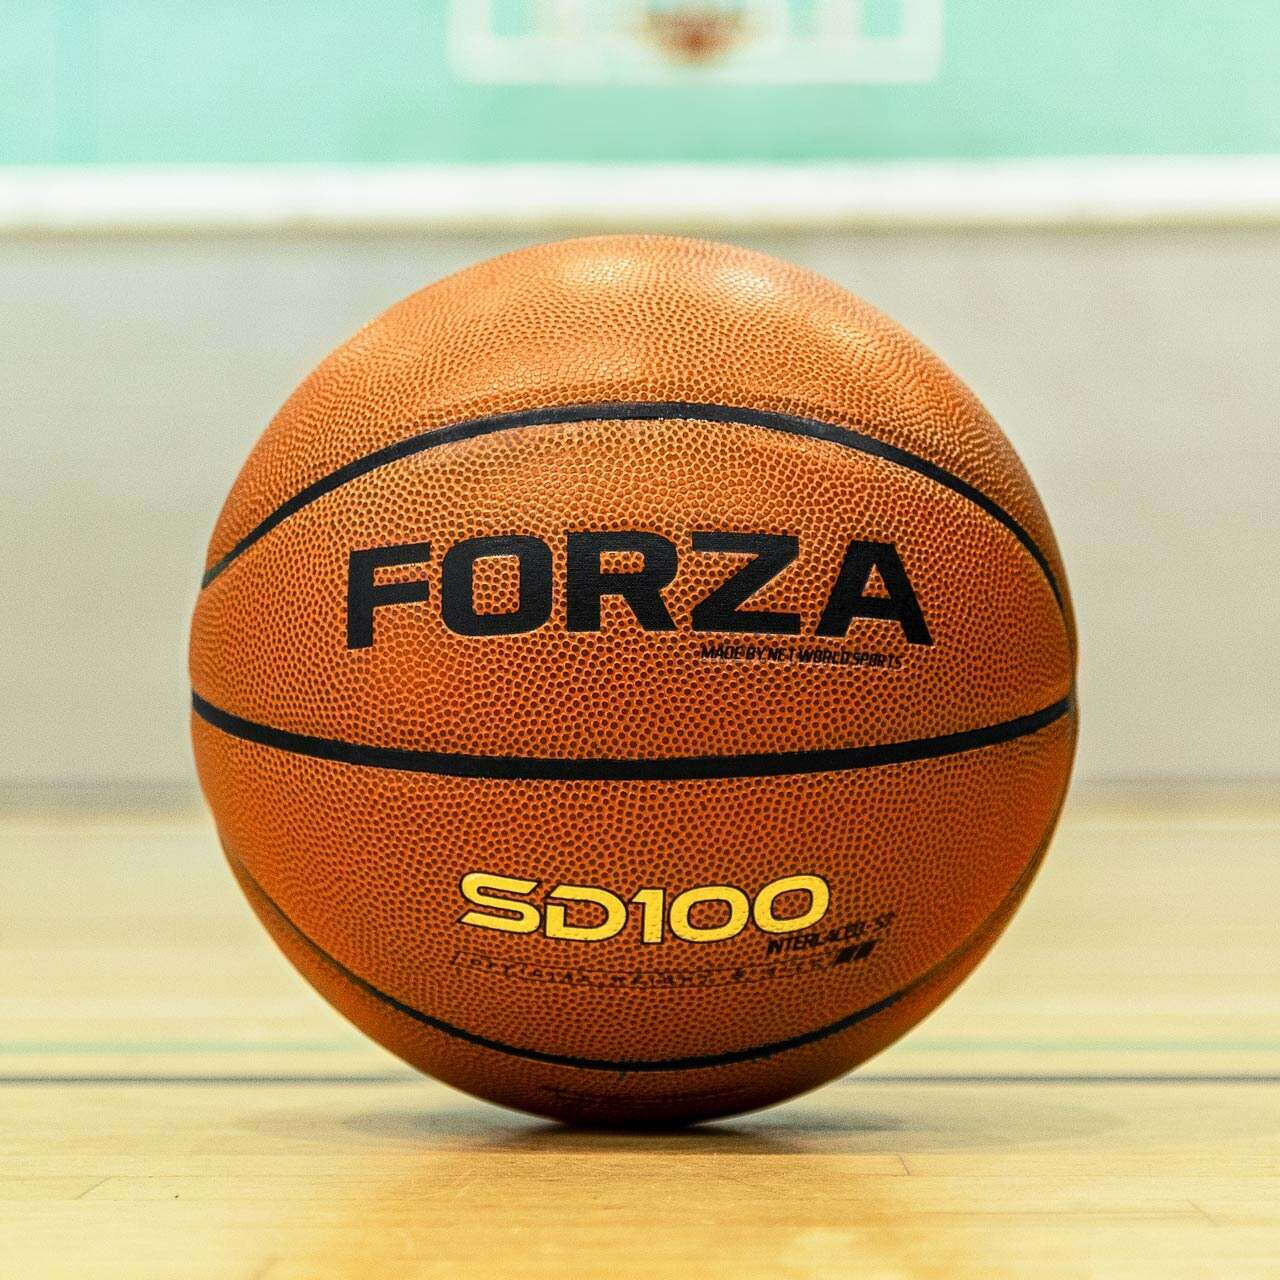 FORZA SD100 Game Basketball Ball [Size 7]